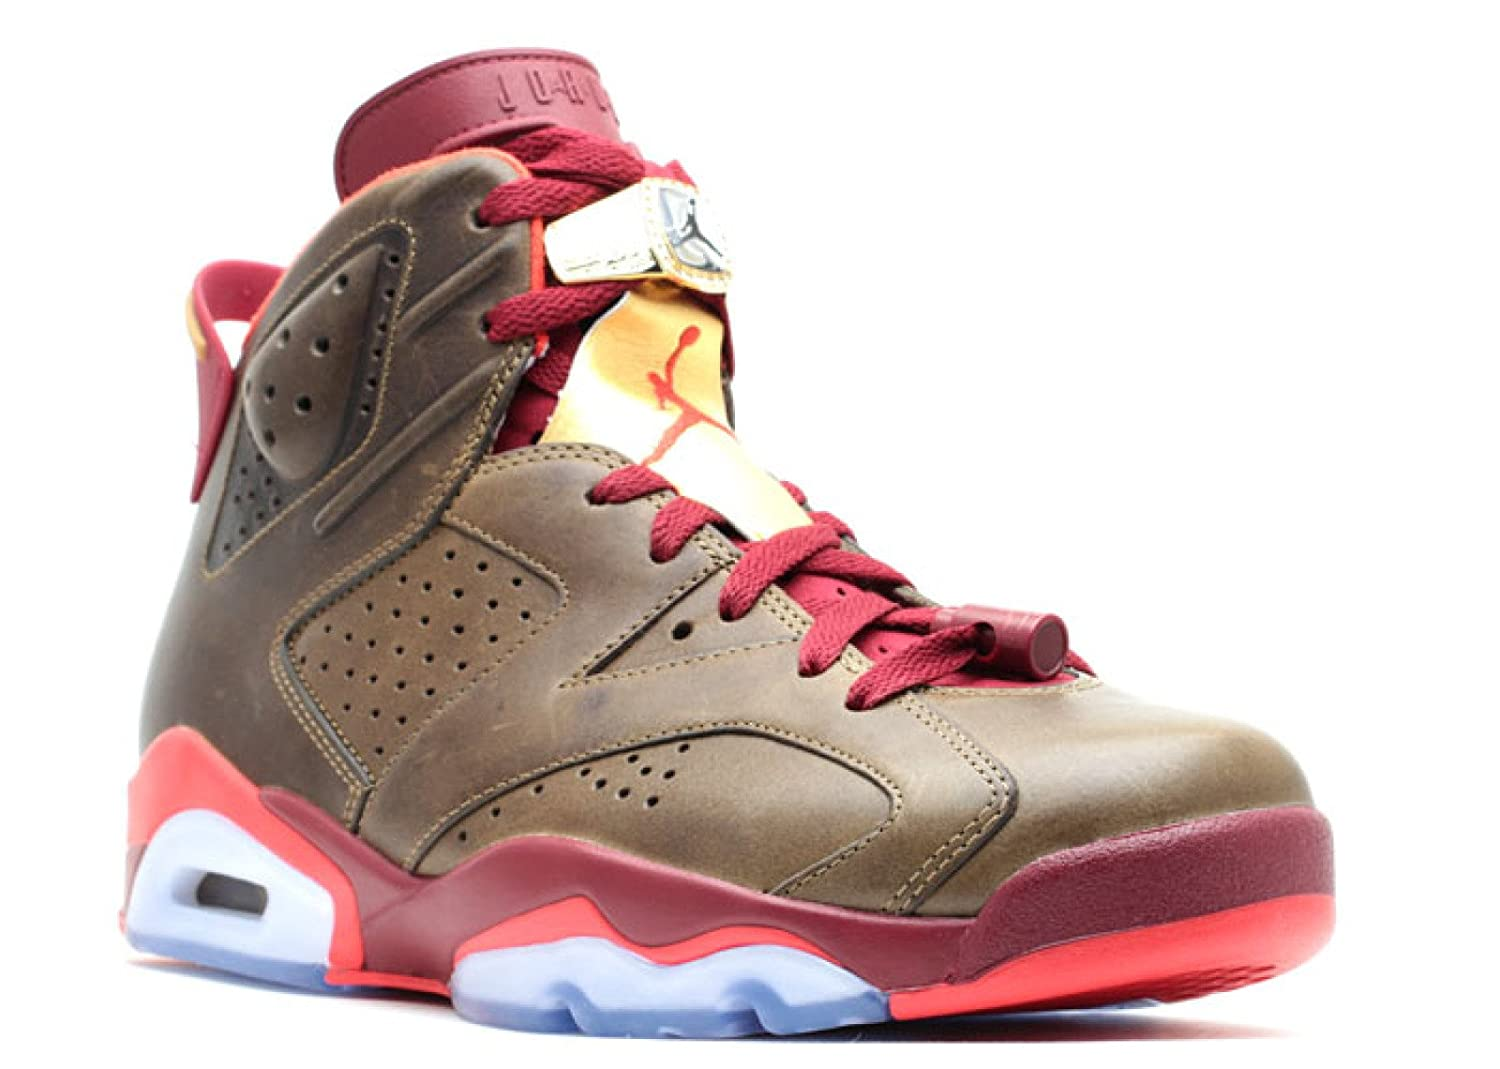 best website a30b4 59b97 Amazon.com   Jordan Air 6 Retro Championship Cigar Men s Shoes Raw  Umber Challenge Red-Metallic Gold 384664-250   Basketball